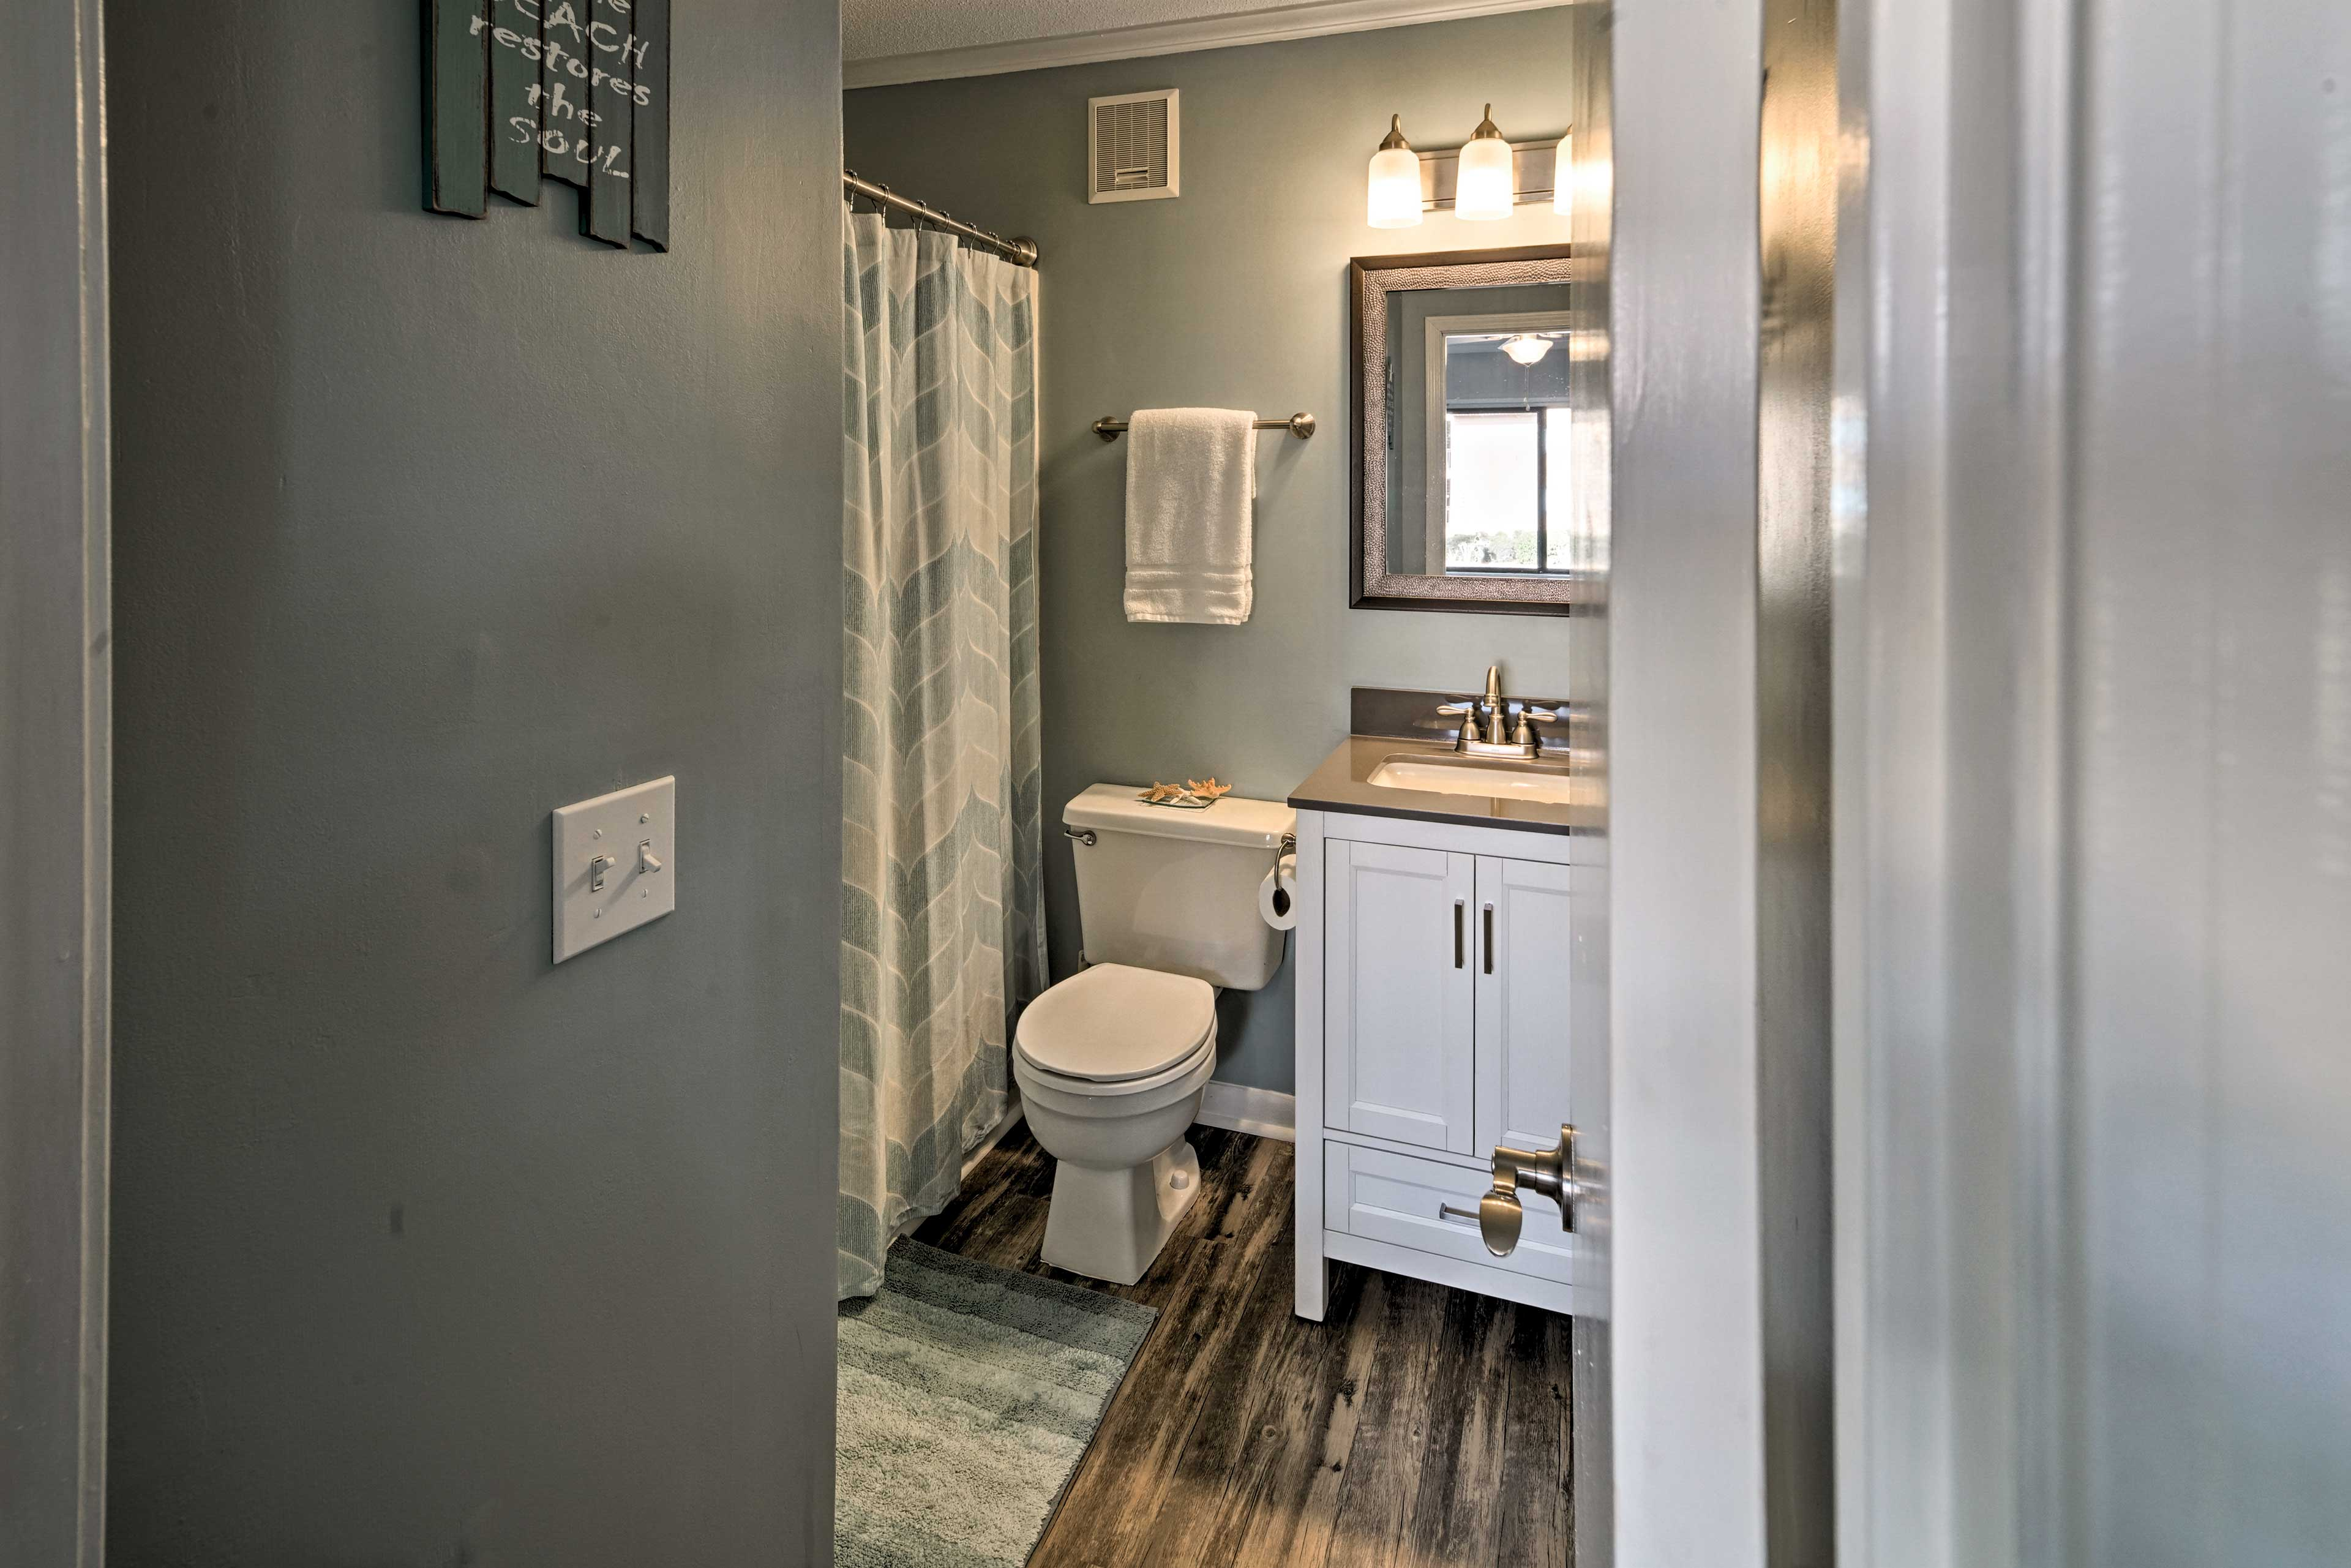 Wash up and freshen up in the en-suite bathroom with a shower/tub combo.